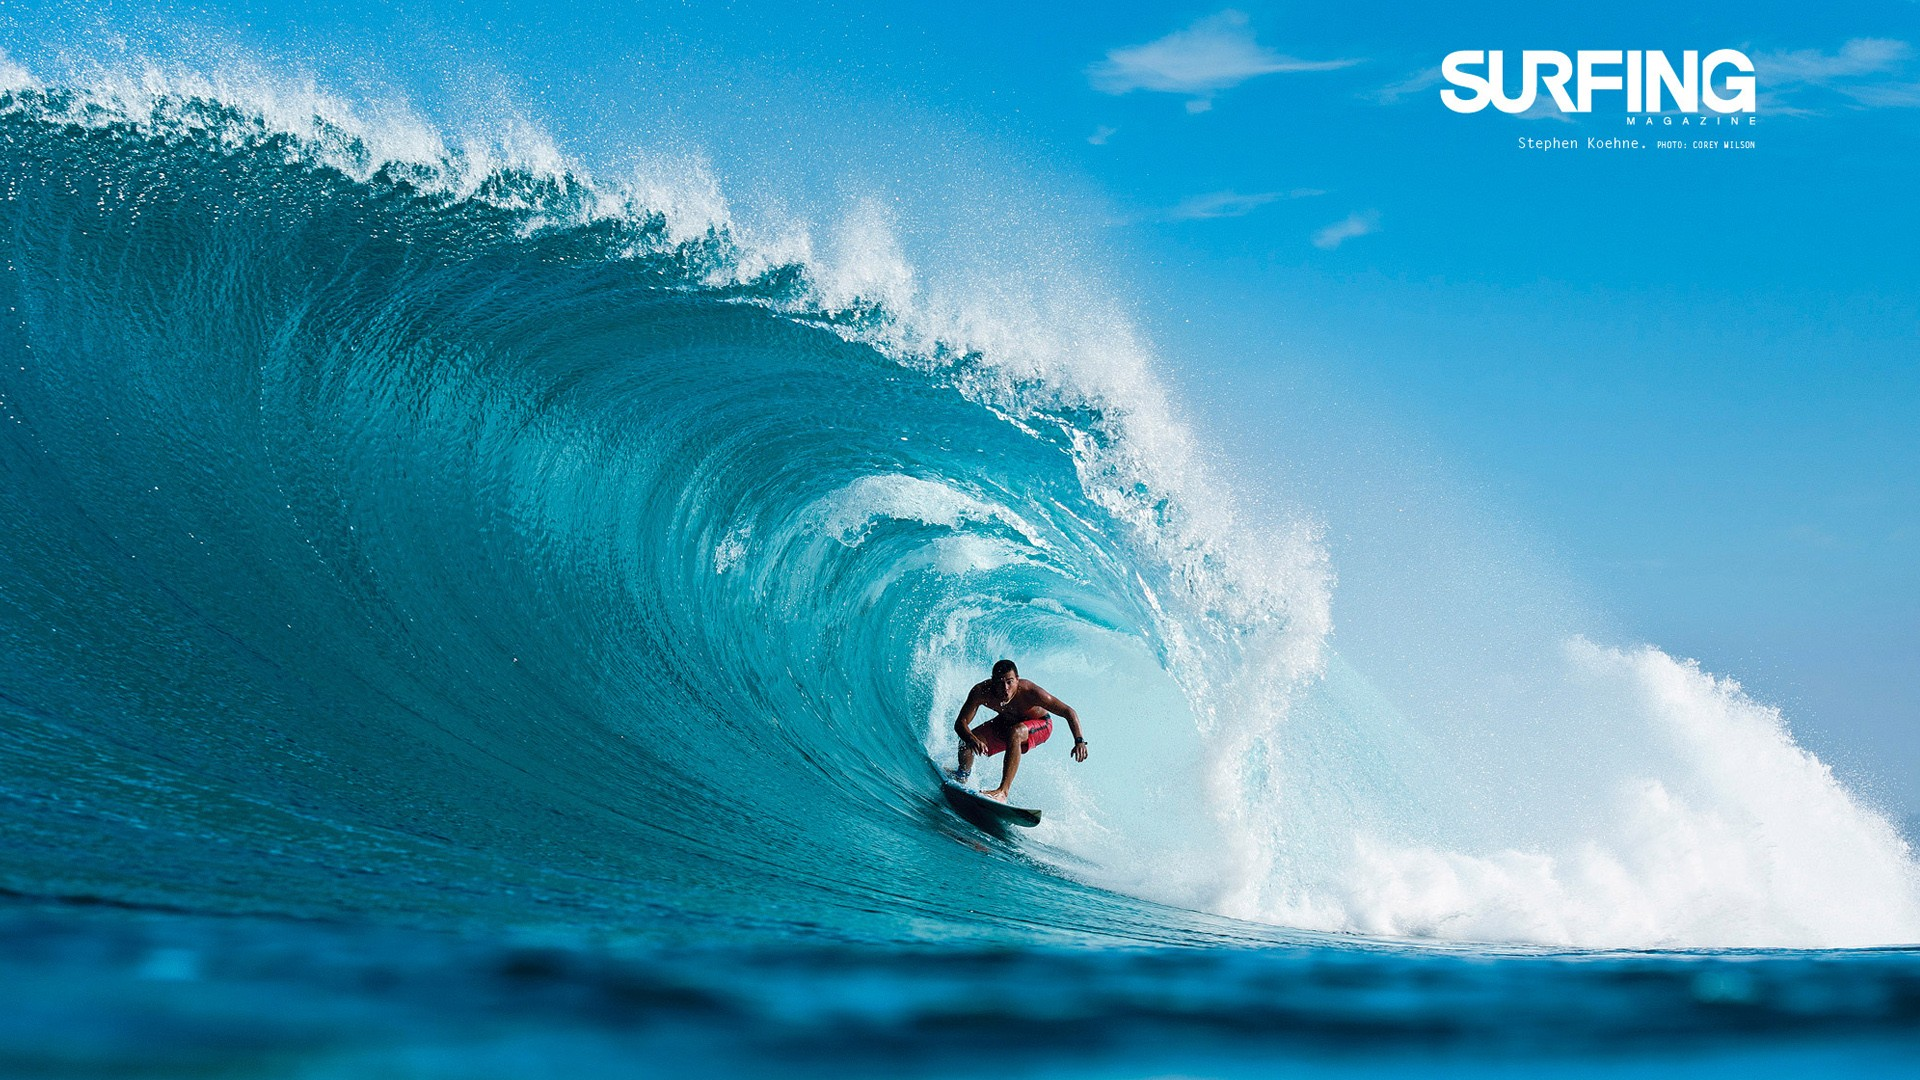 Wallpaper  Full Hd Surfing In Teahupoo Tahiti Wallpapers Hd Wallpapers Id